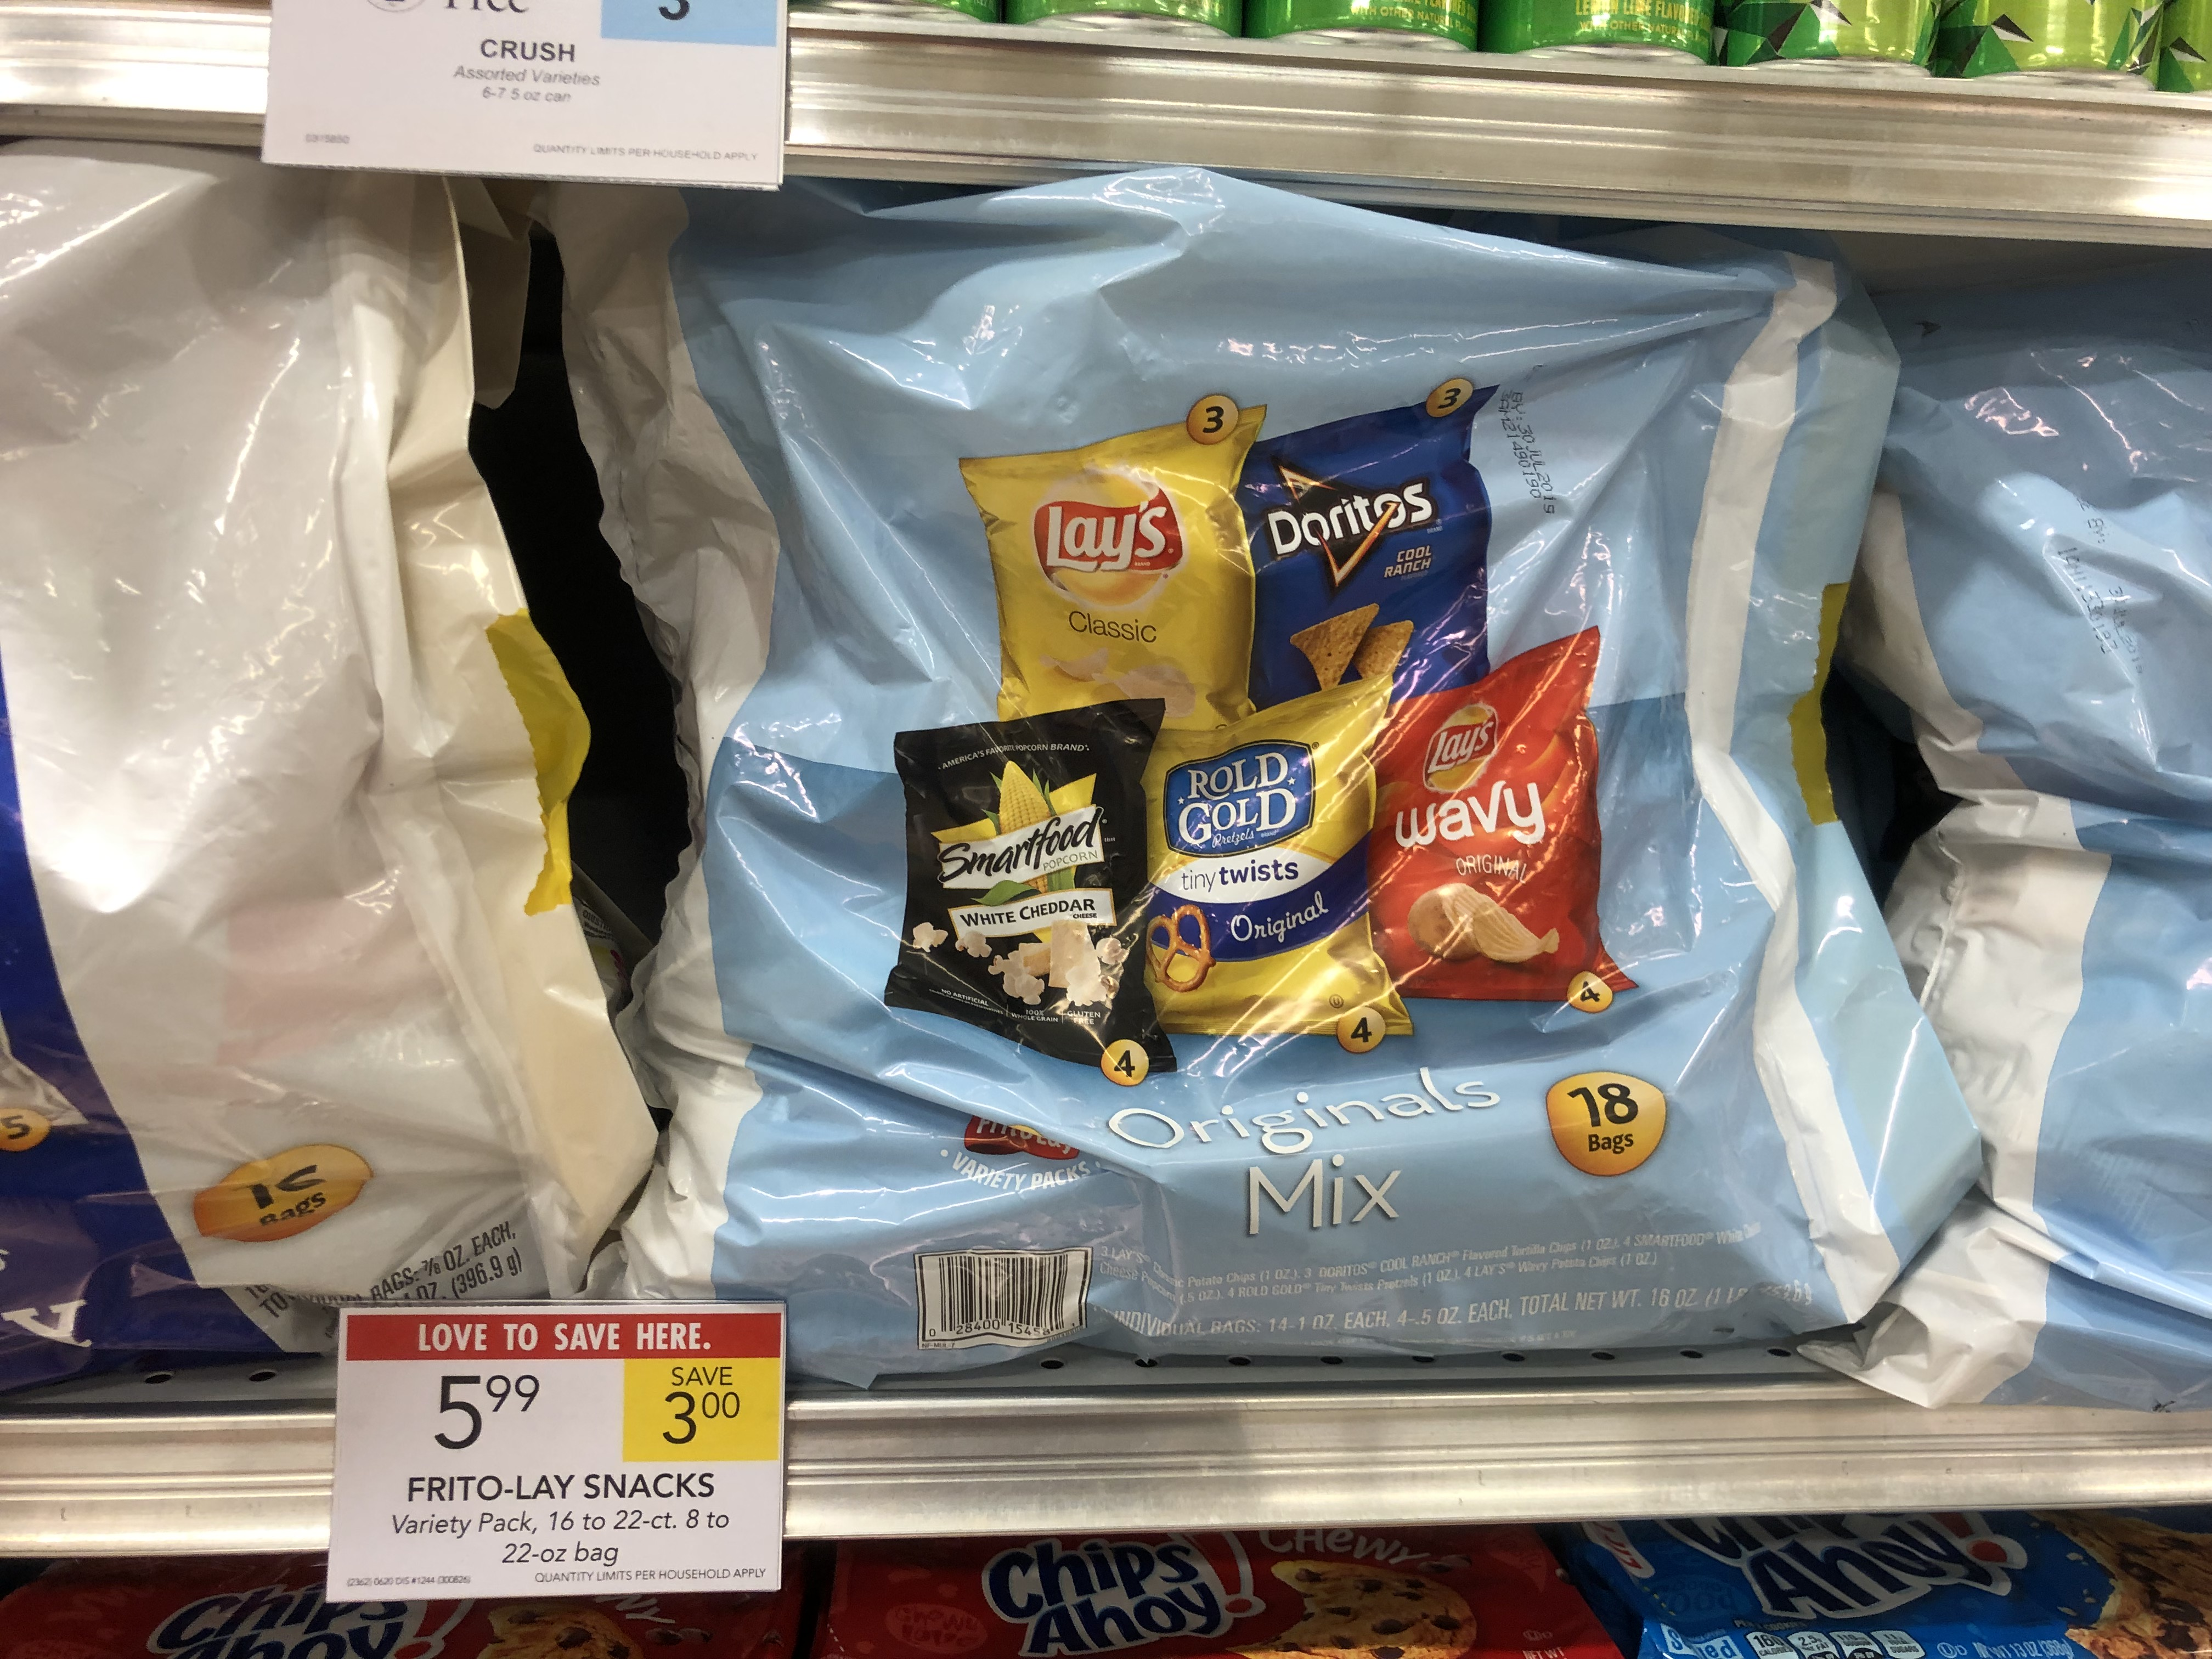 Frito-Lay Snacks Variety Pack Only $4 99 At Publix - Save $4